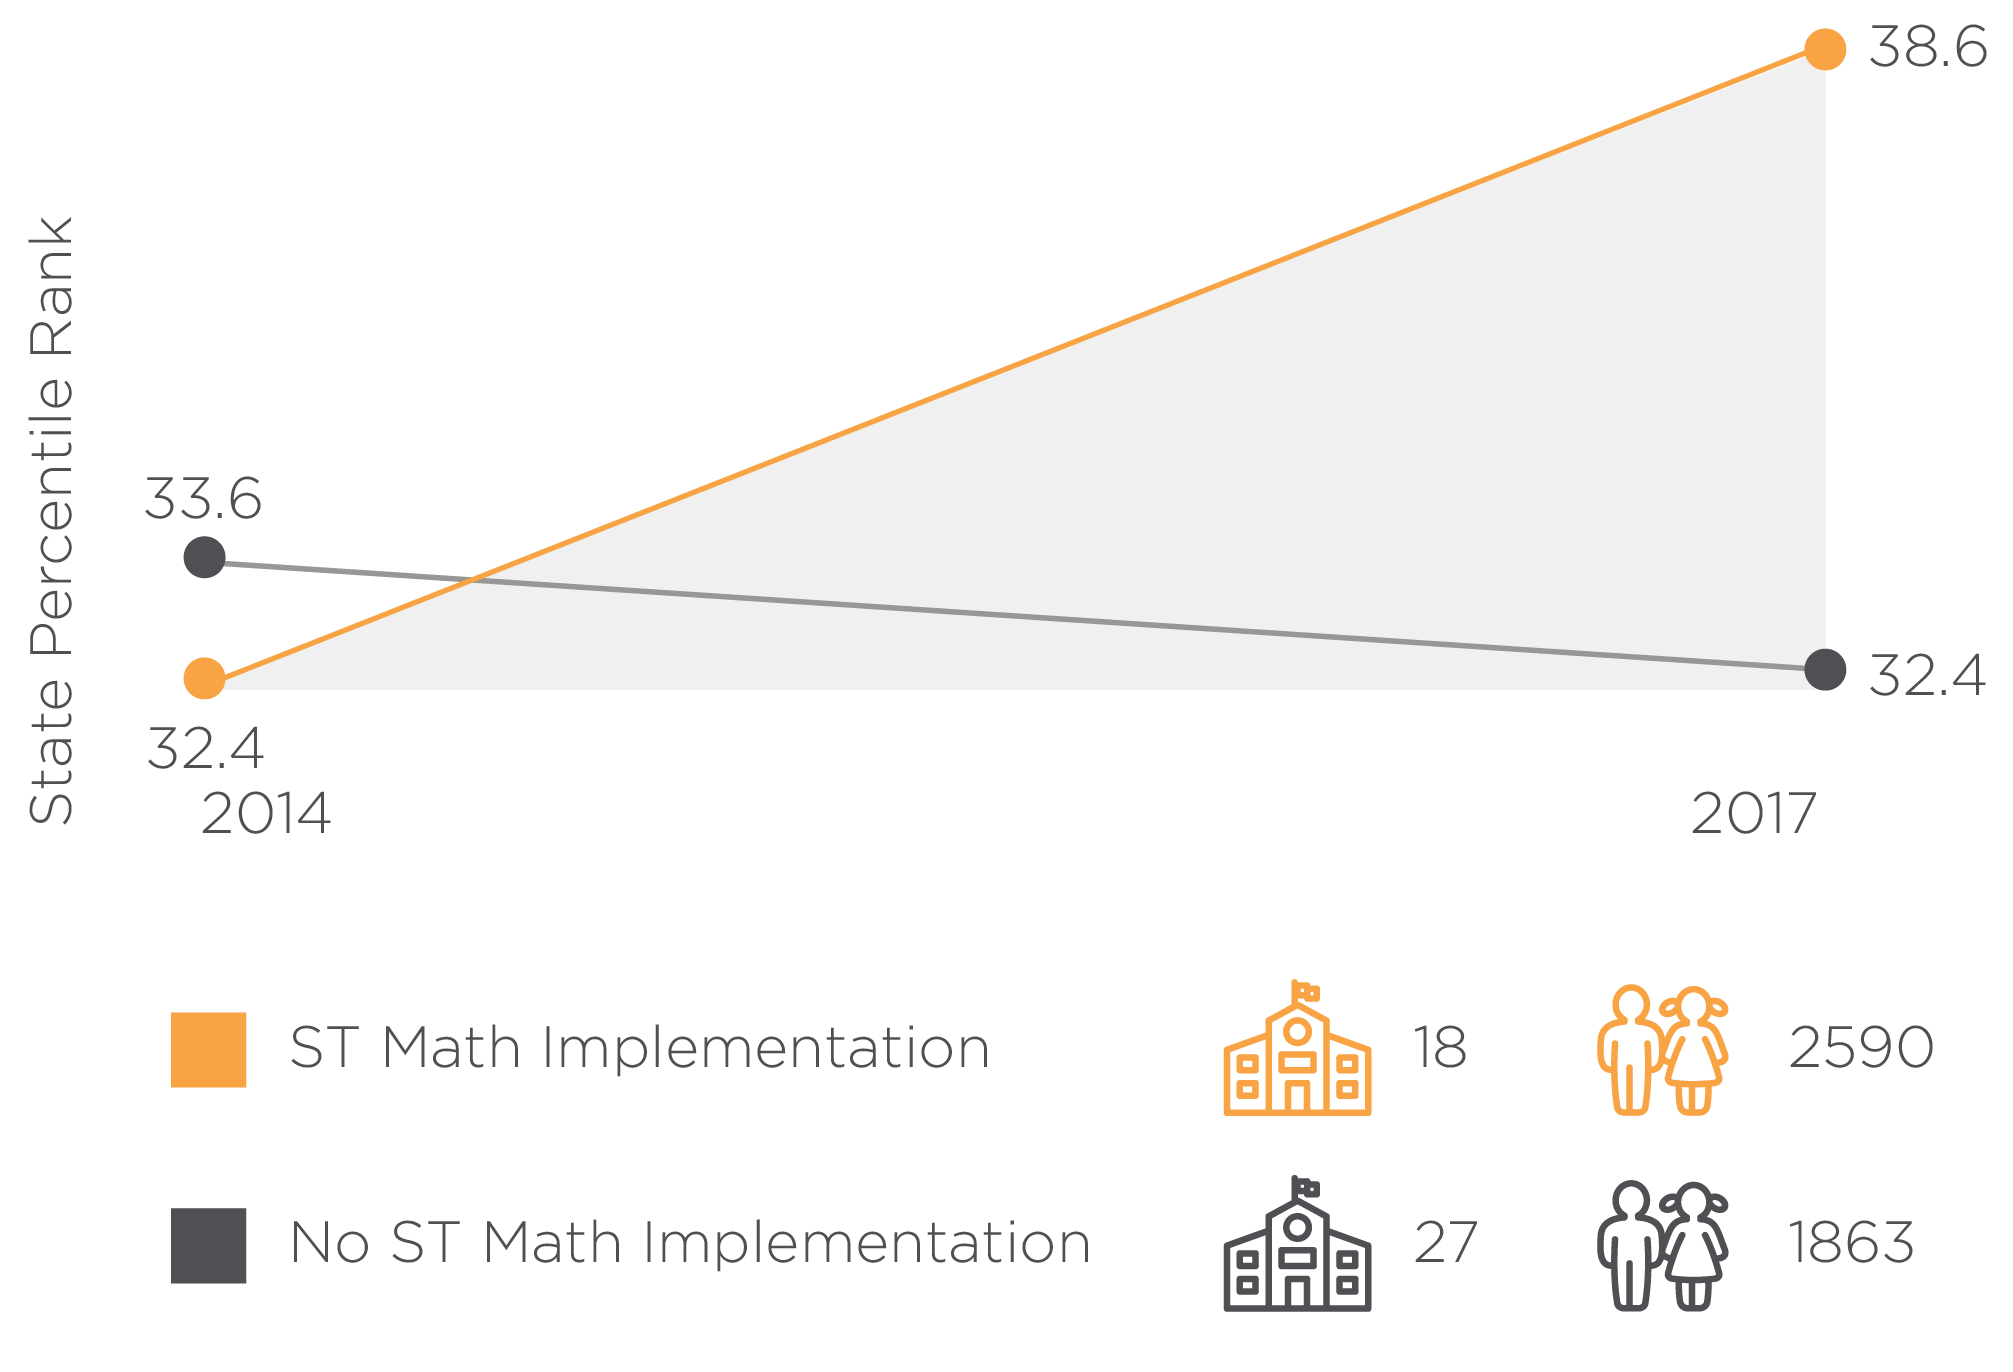 st-math-ma-results-graph-2017.png